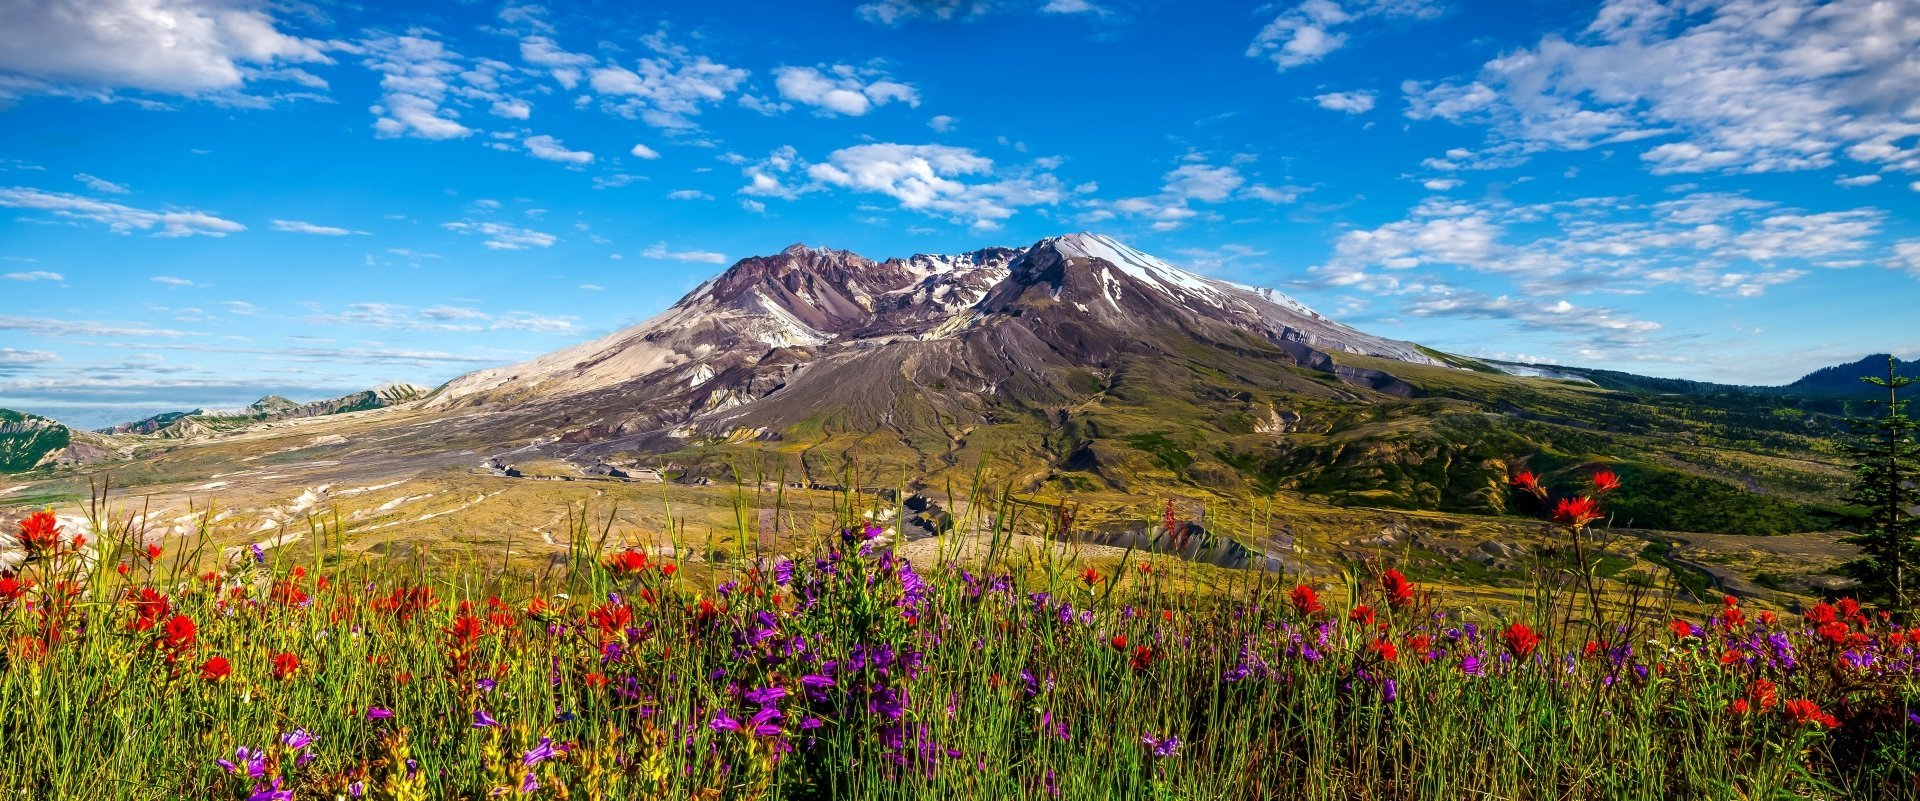 4 Mount St Helens HD Wallpapers Background Images 1920x801